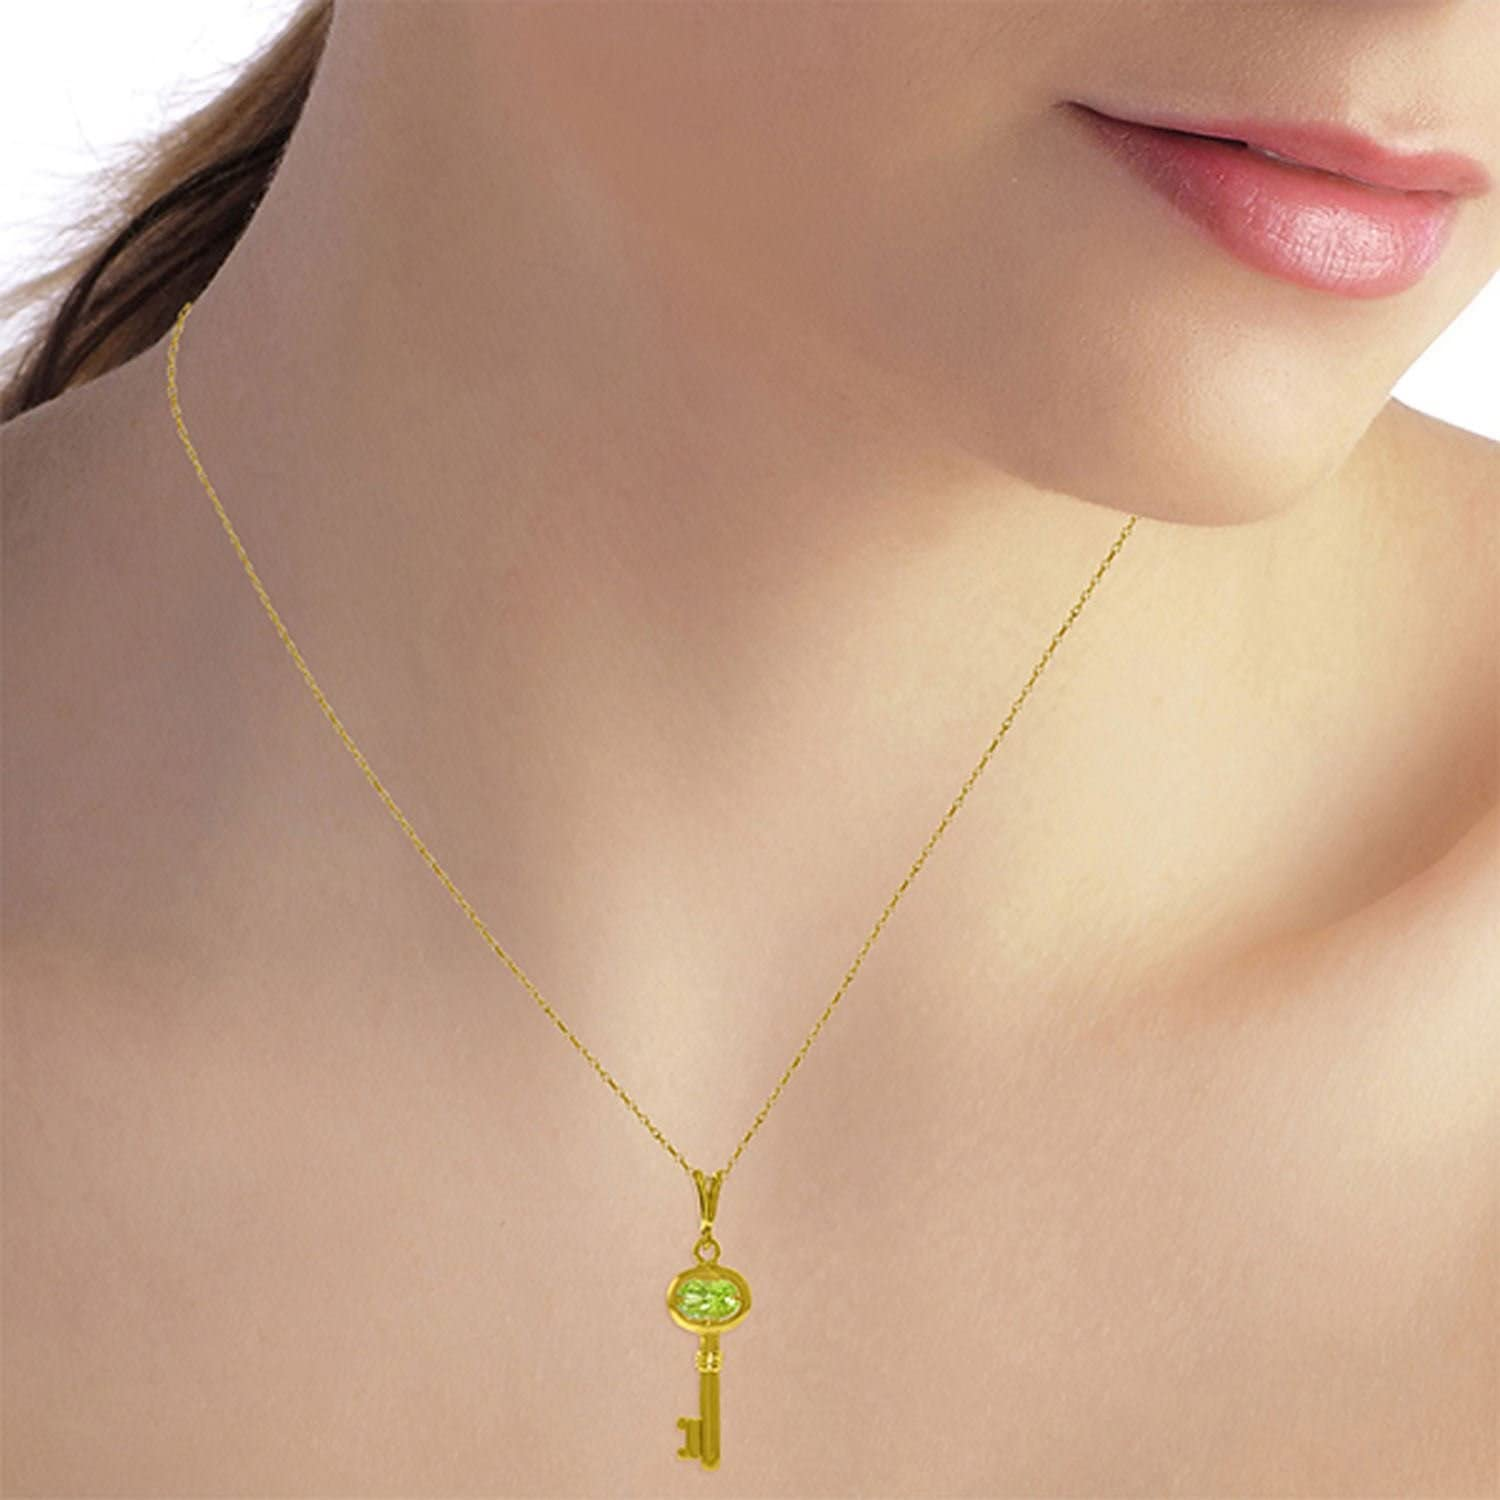 ALARRI 0.5 Carat 14K Solid Gold Key Charm Necklace Peridot with 18 Inch Chain Length